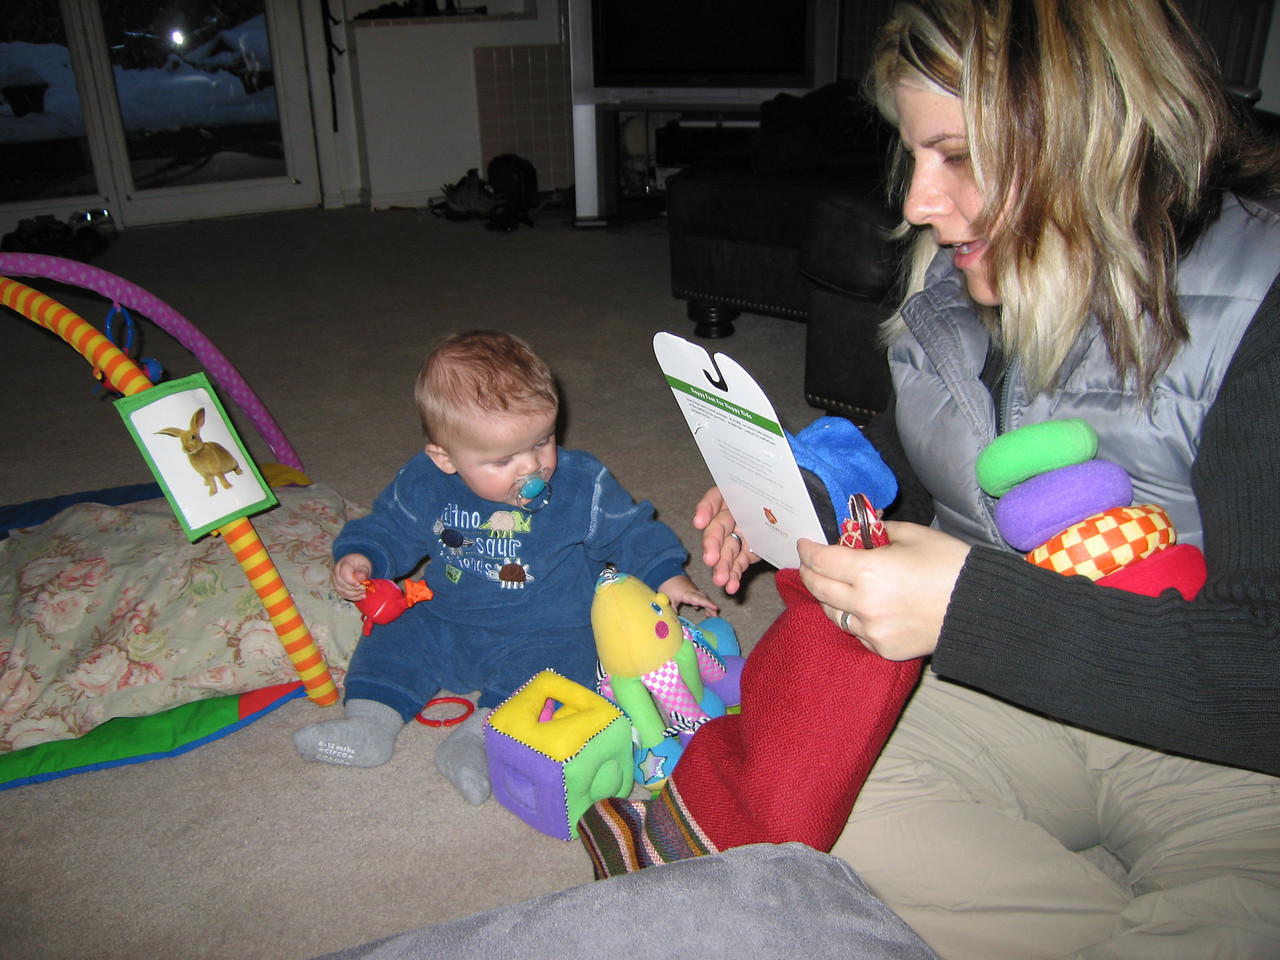 Owen and Kelly opening stockings